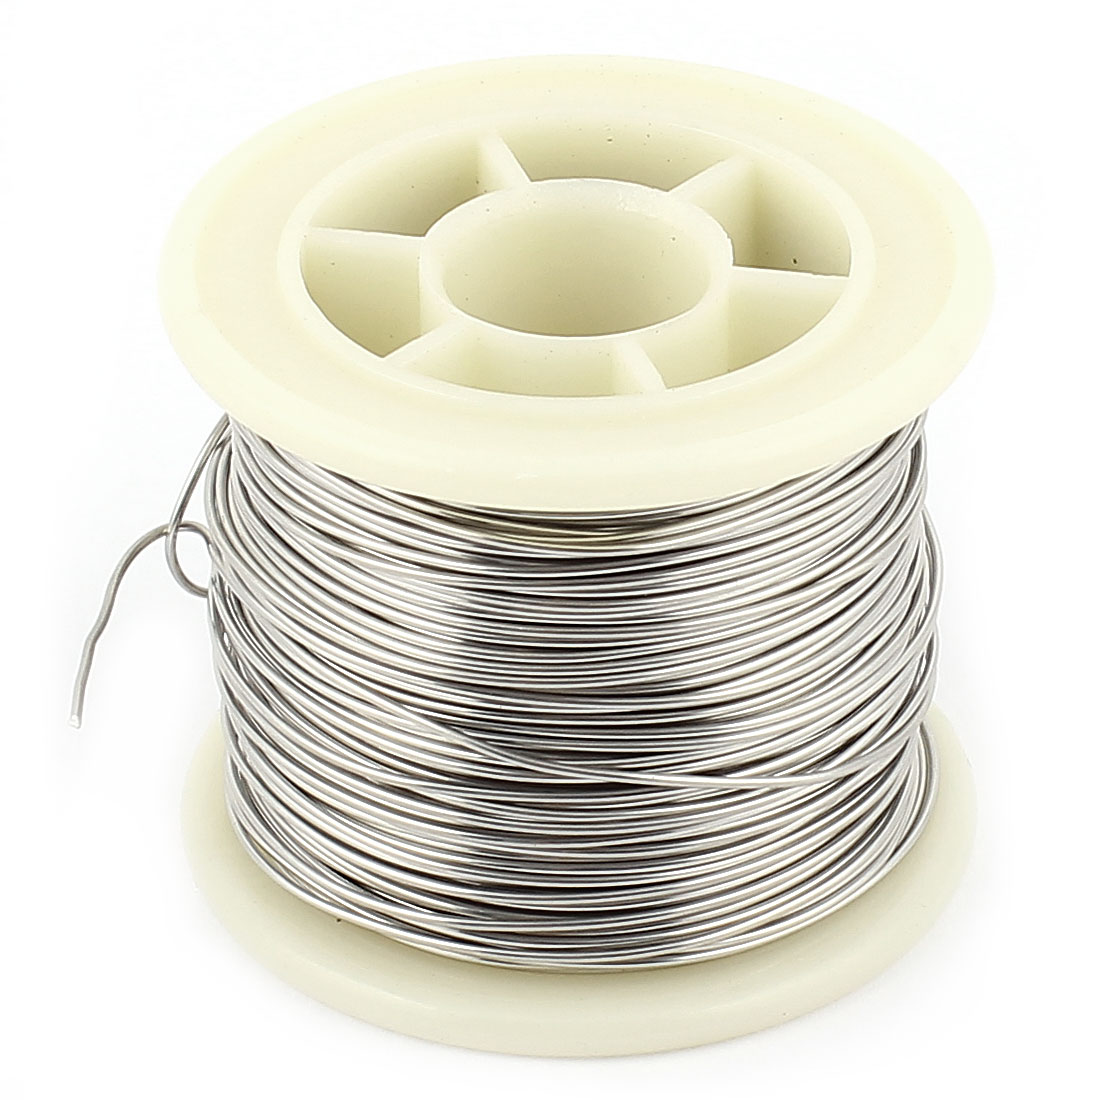 Nichrome 80 0.8mm 20 Gauge AWG 82ft Roll 0.7 Ohms/ft Heater Wire